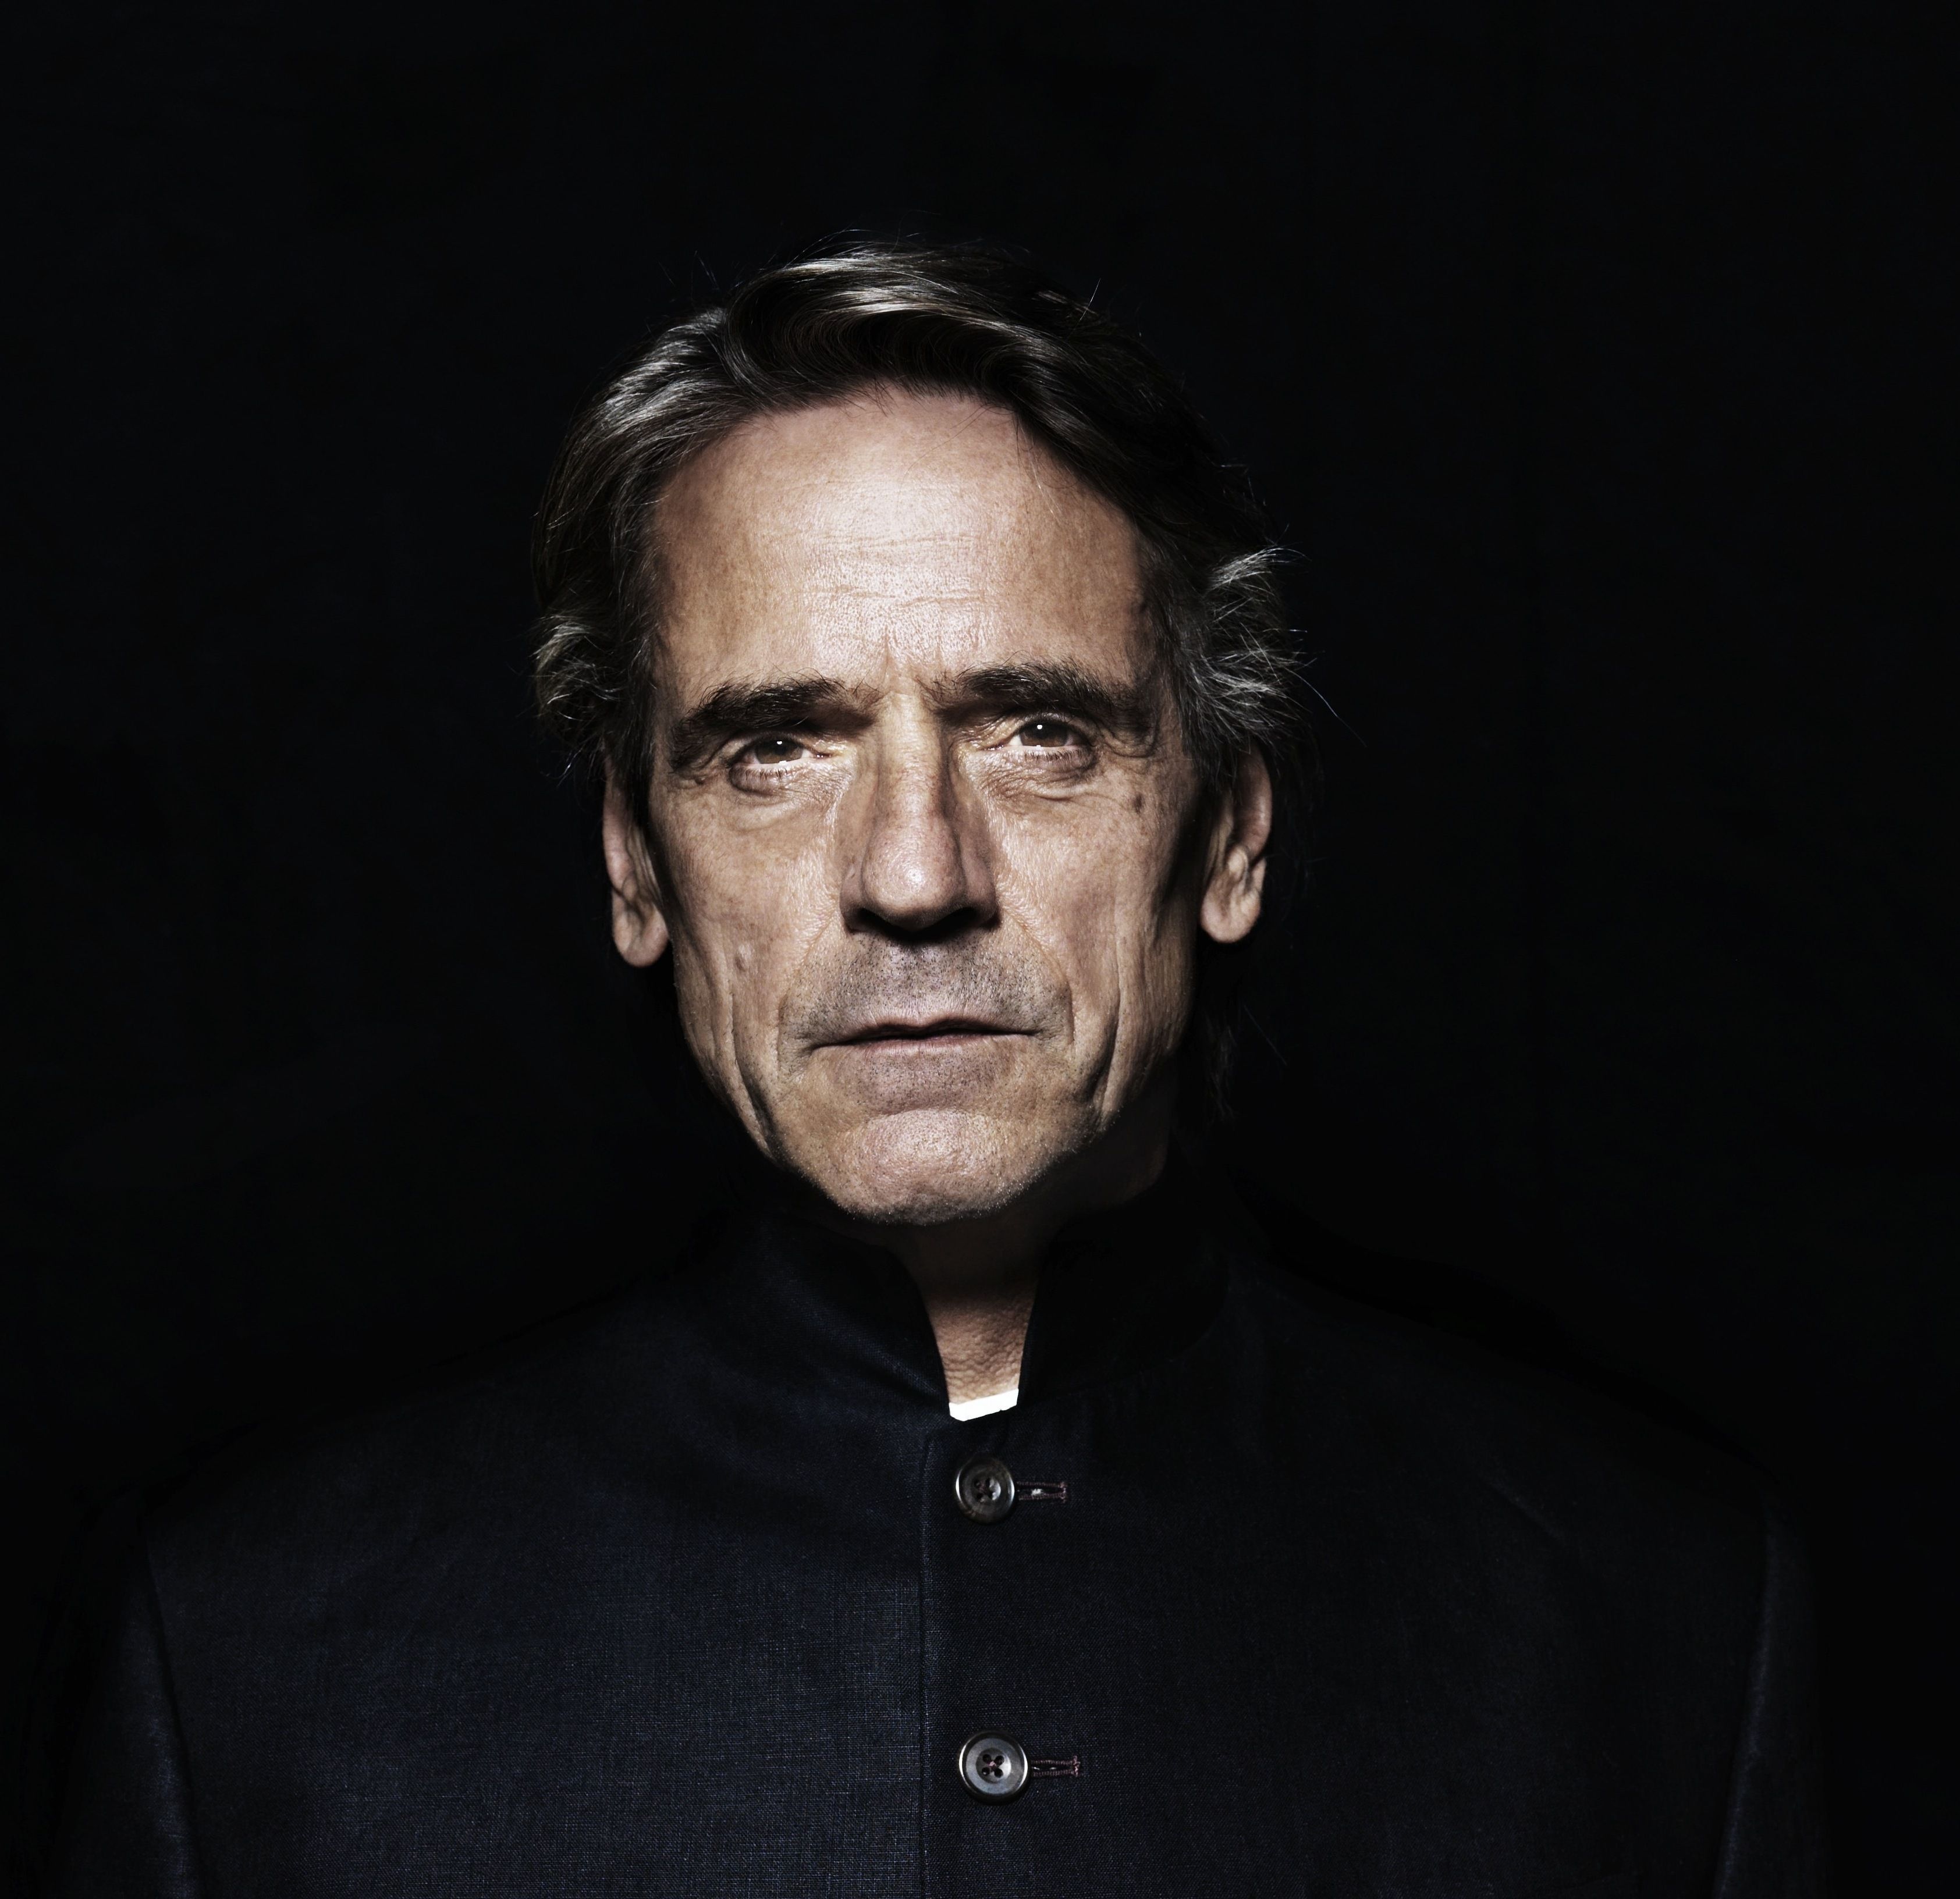 Fappening Jeremy Irons (born 1948)  nude (78 photo), Snapchat, braless